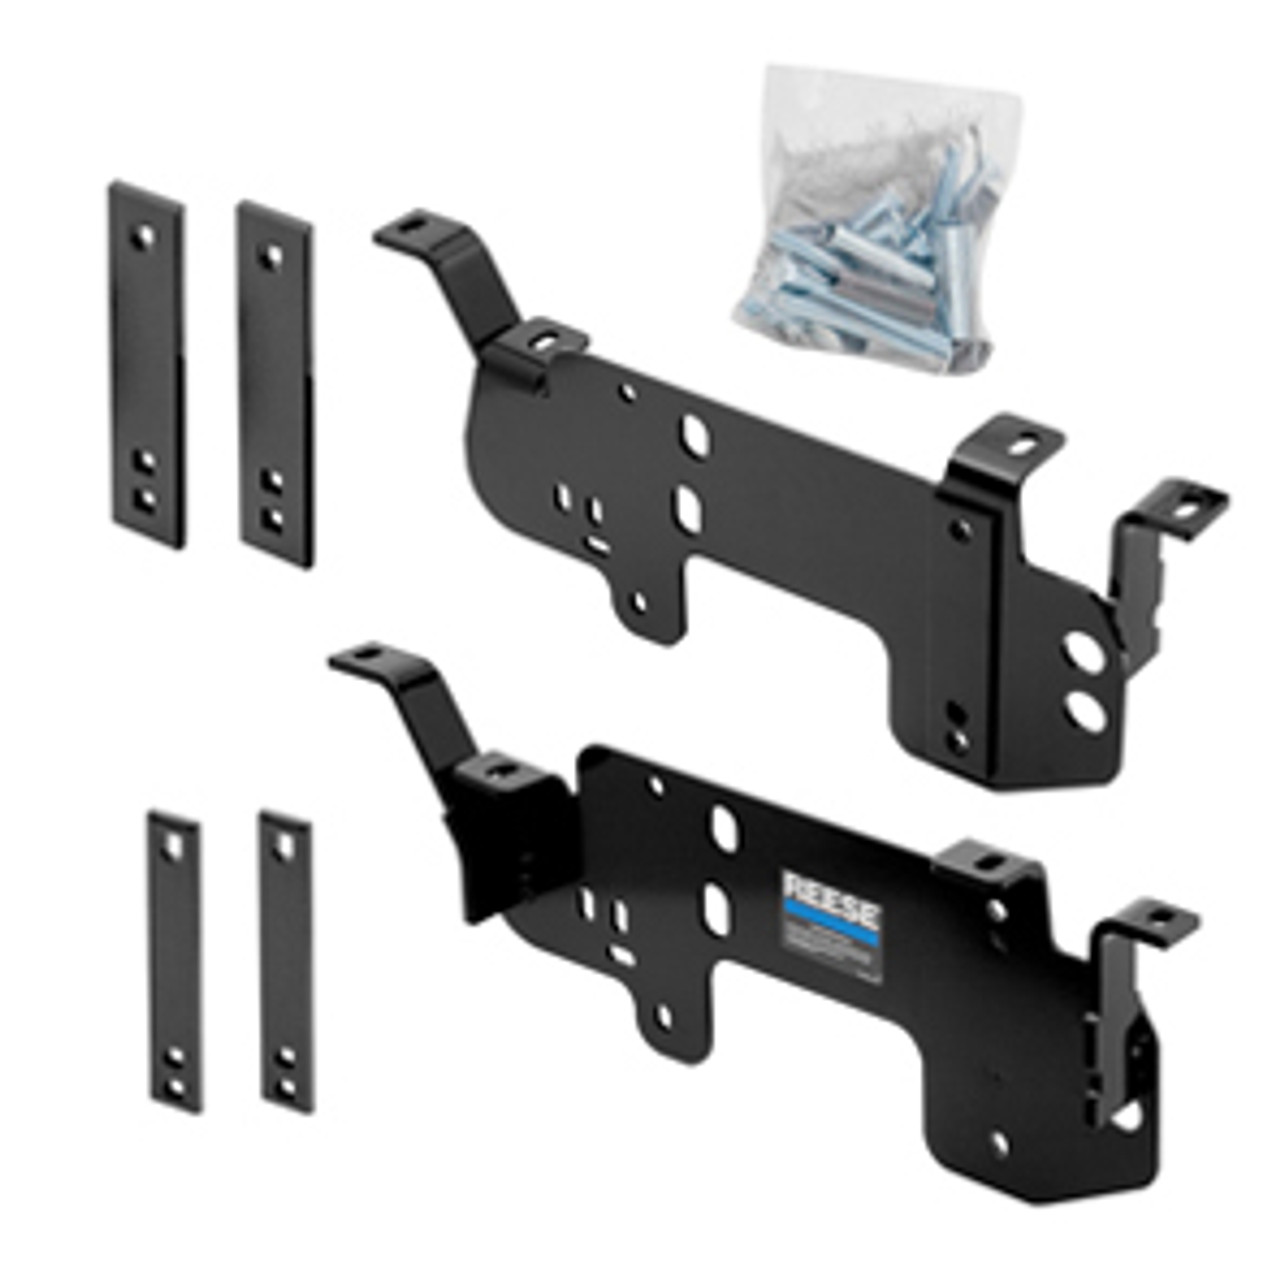 56011 --- Fifth Wheel Trailer Hitch Outboard Bracket Kit for Dodge RAM HD Pickups